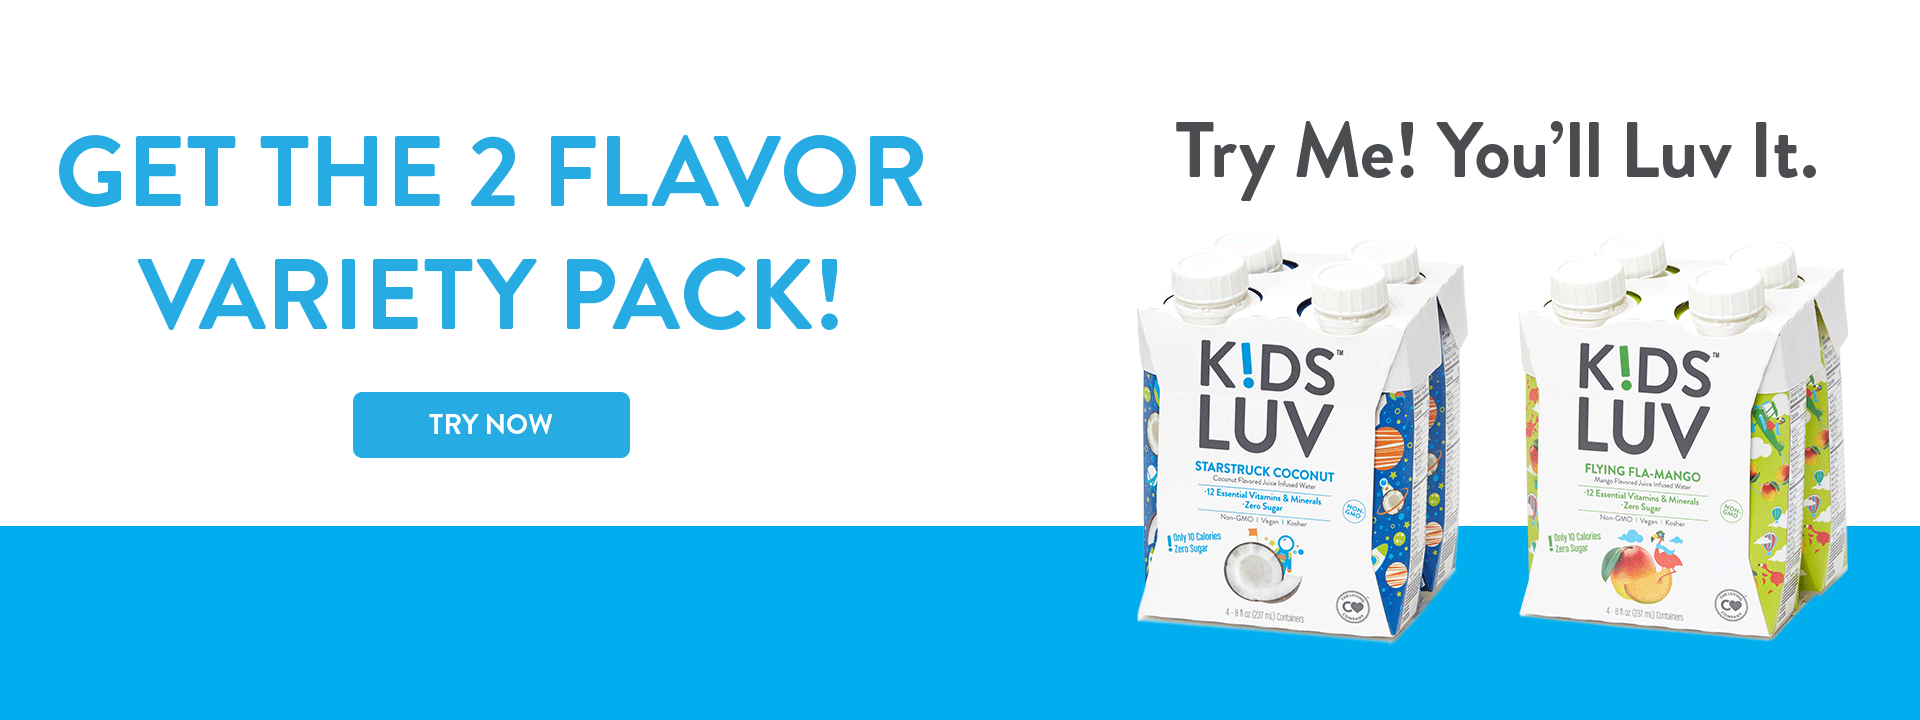 Get the 2 flavor variety pack! Learn more.